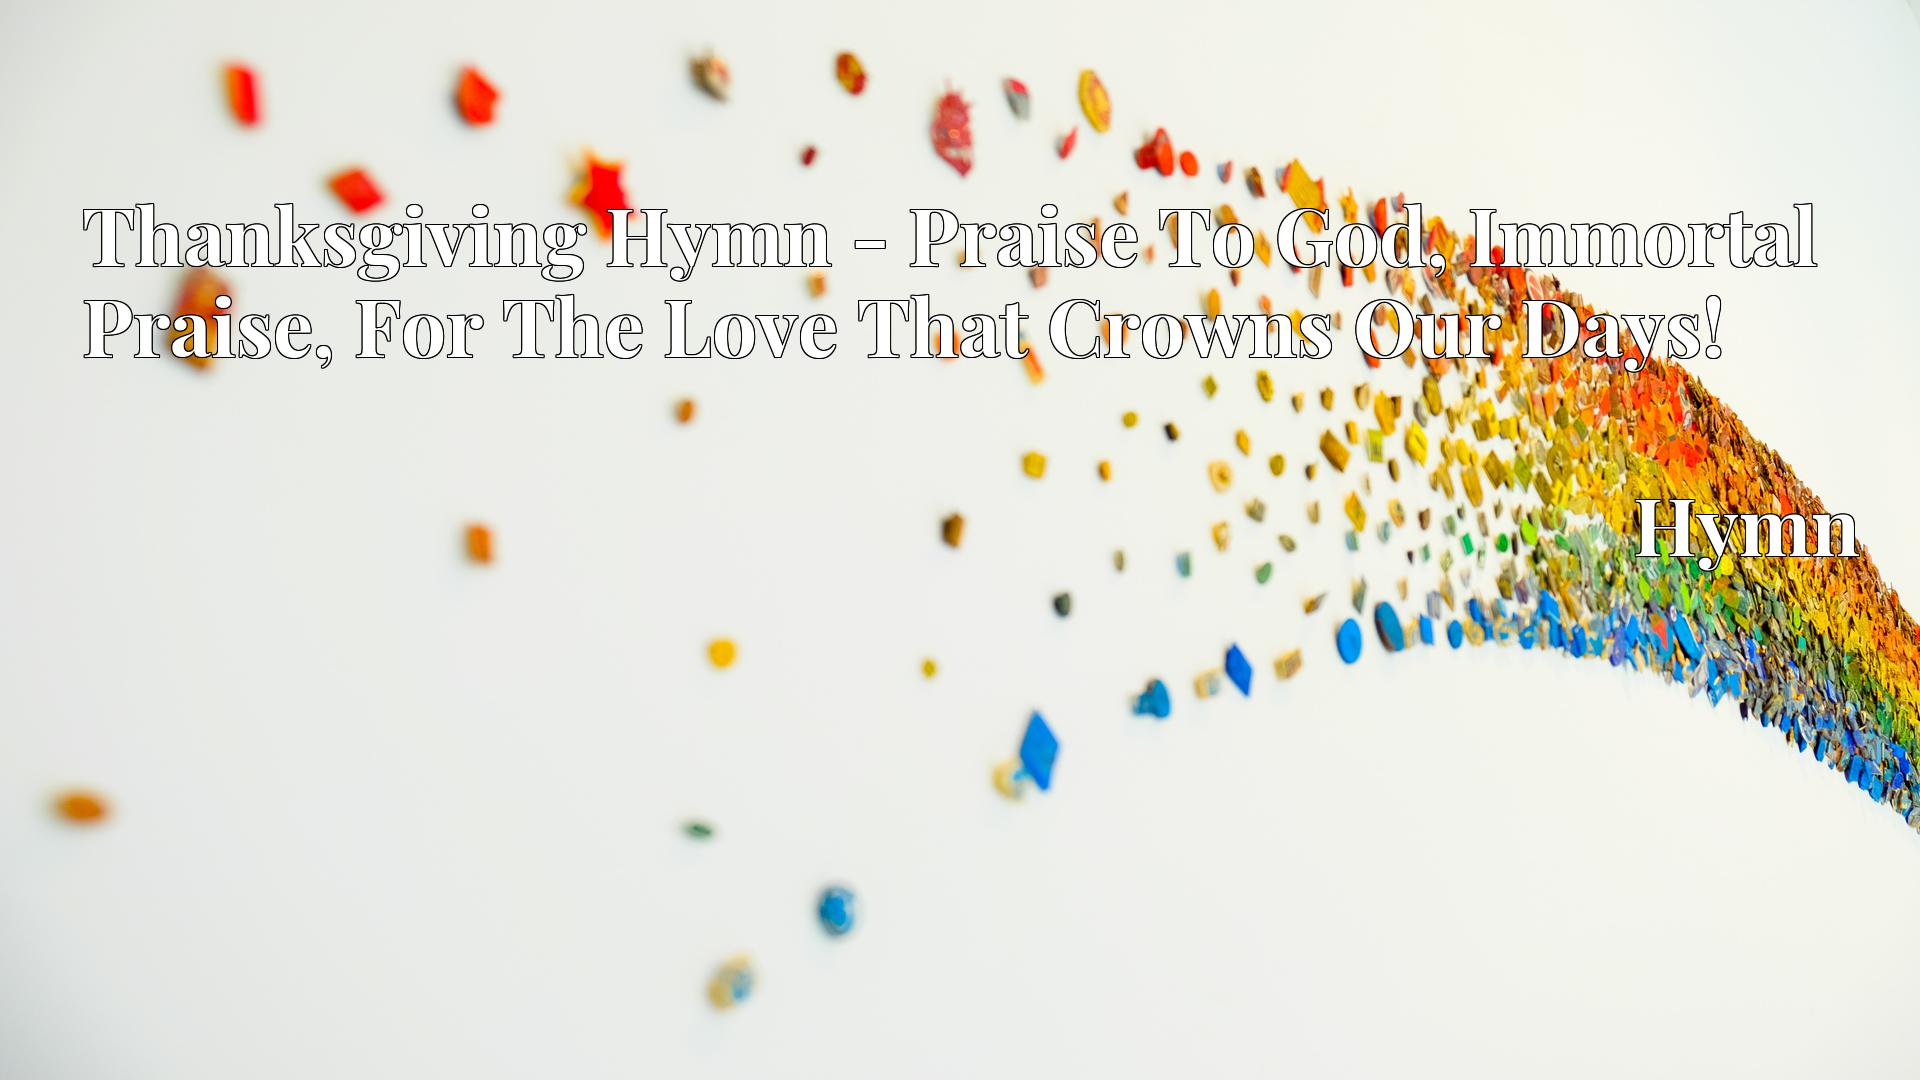 Thanksgiving Hymn - Praise To God, Immortal Praise, For The Love That Crowns Our Days! - Hymn